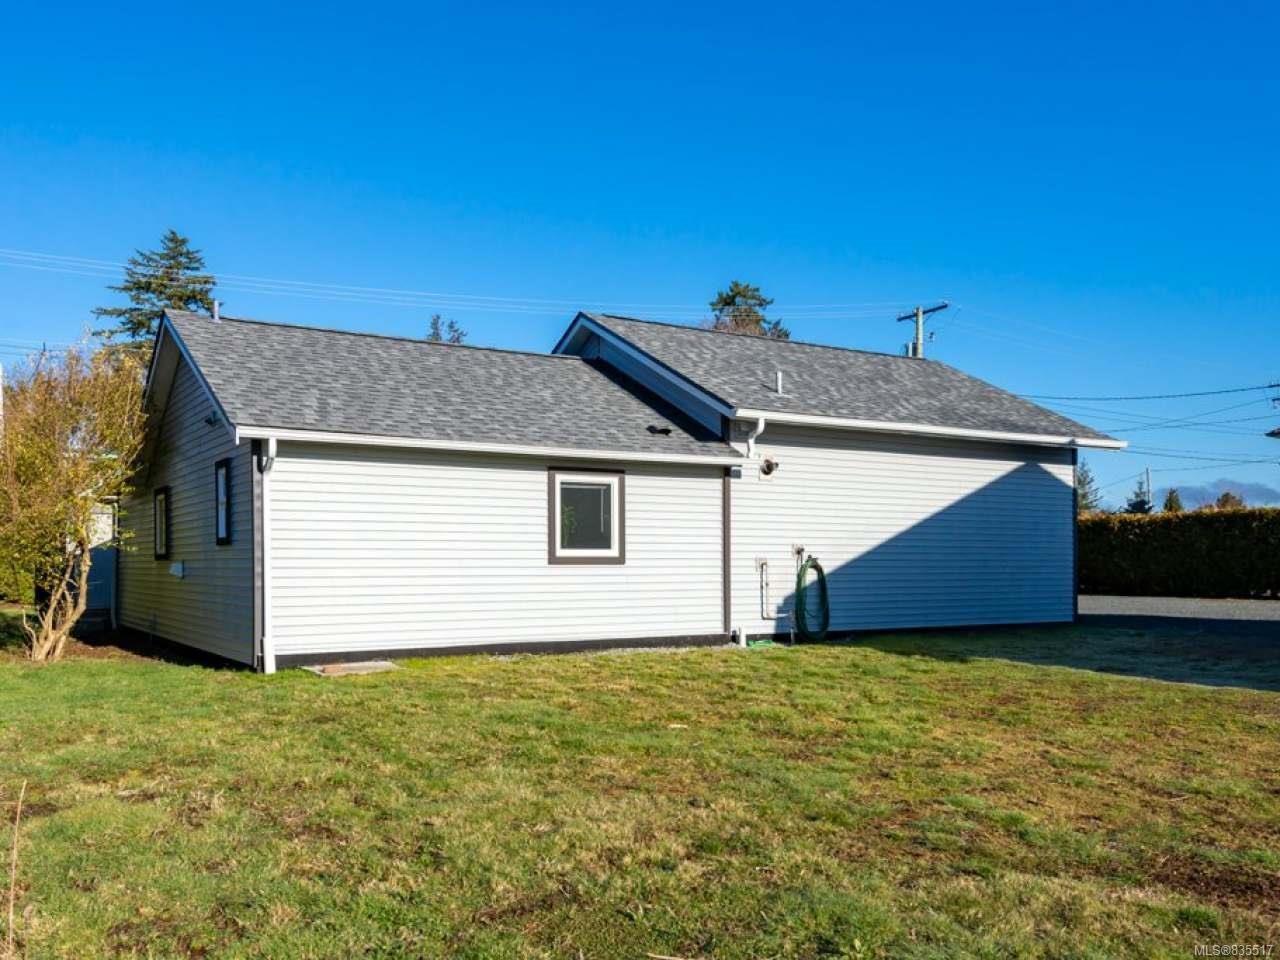 Photo 30: Photos: 109 Larwood Rd in CAMPBELL RIVER: CR Willow Point Single Family Detached for sale (Campbell River)  : MLS®# 835517